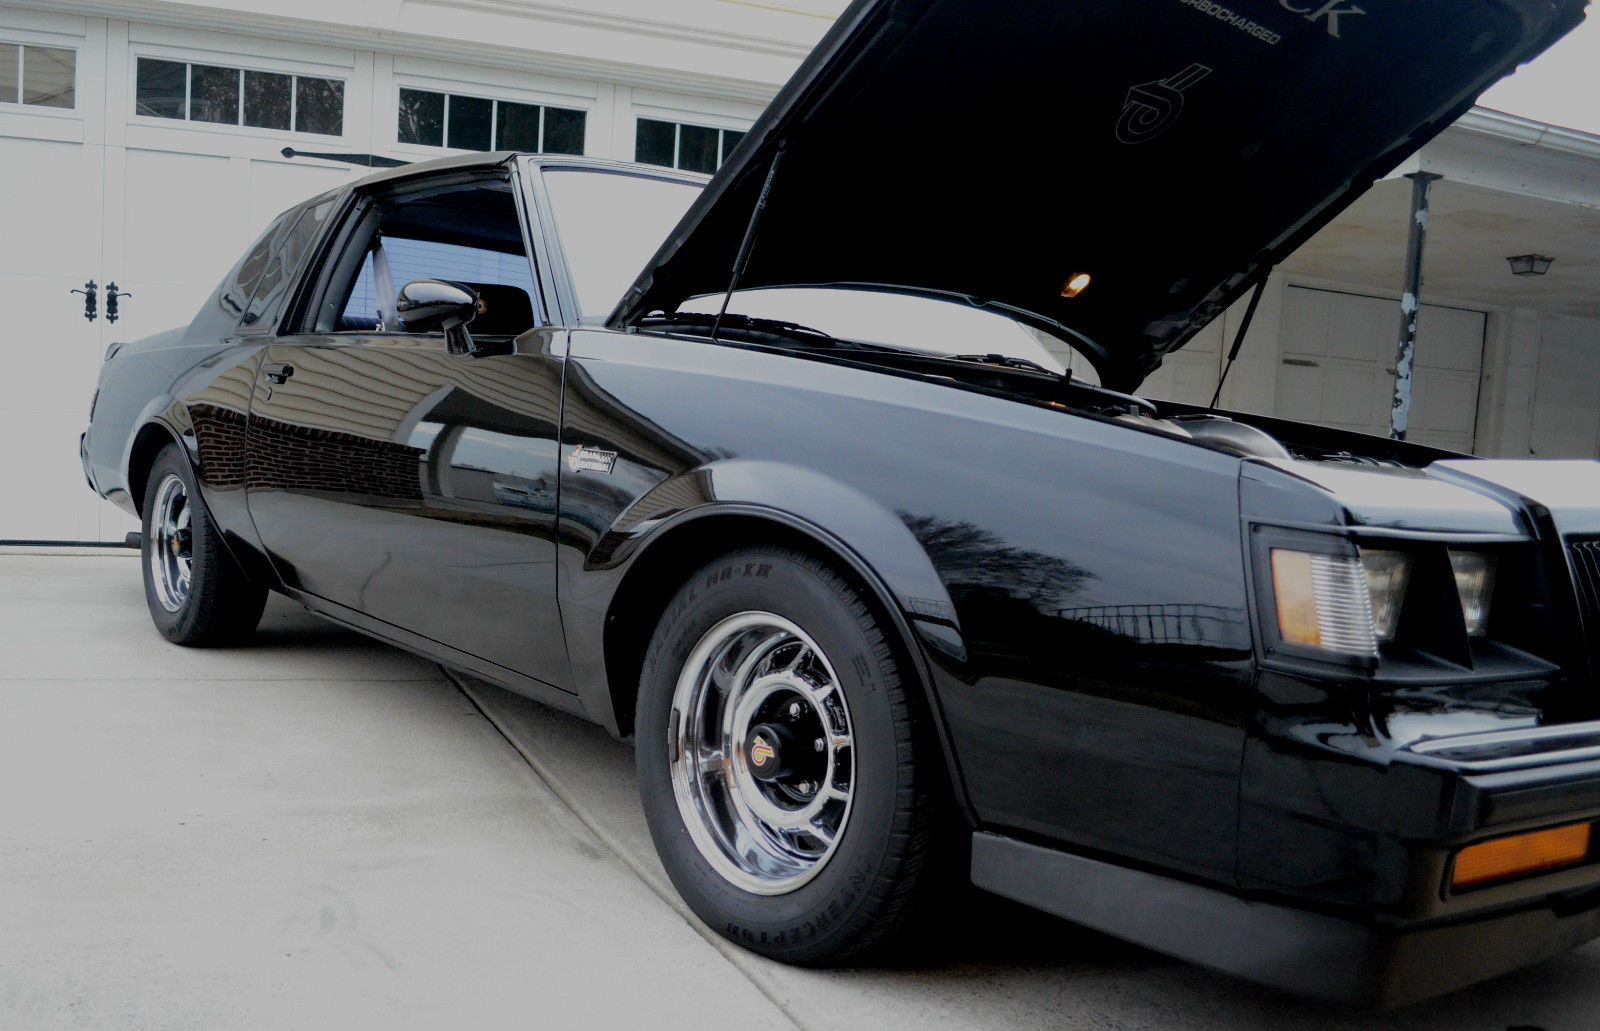 1987 buick regal grand national 79k mi t tops stock no rust very nice original classic buick. Black Bedroom Furniture Sets. Home Design Ideas